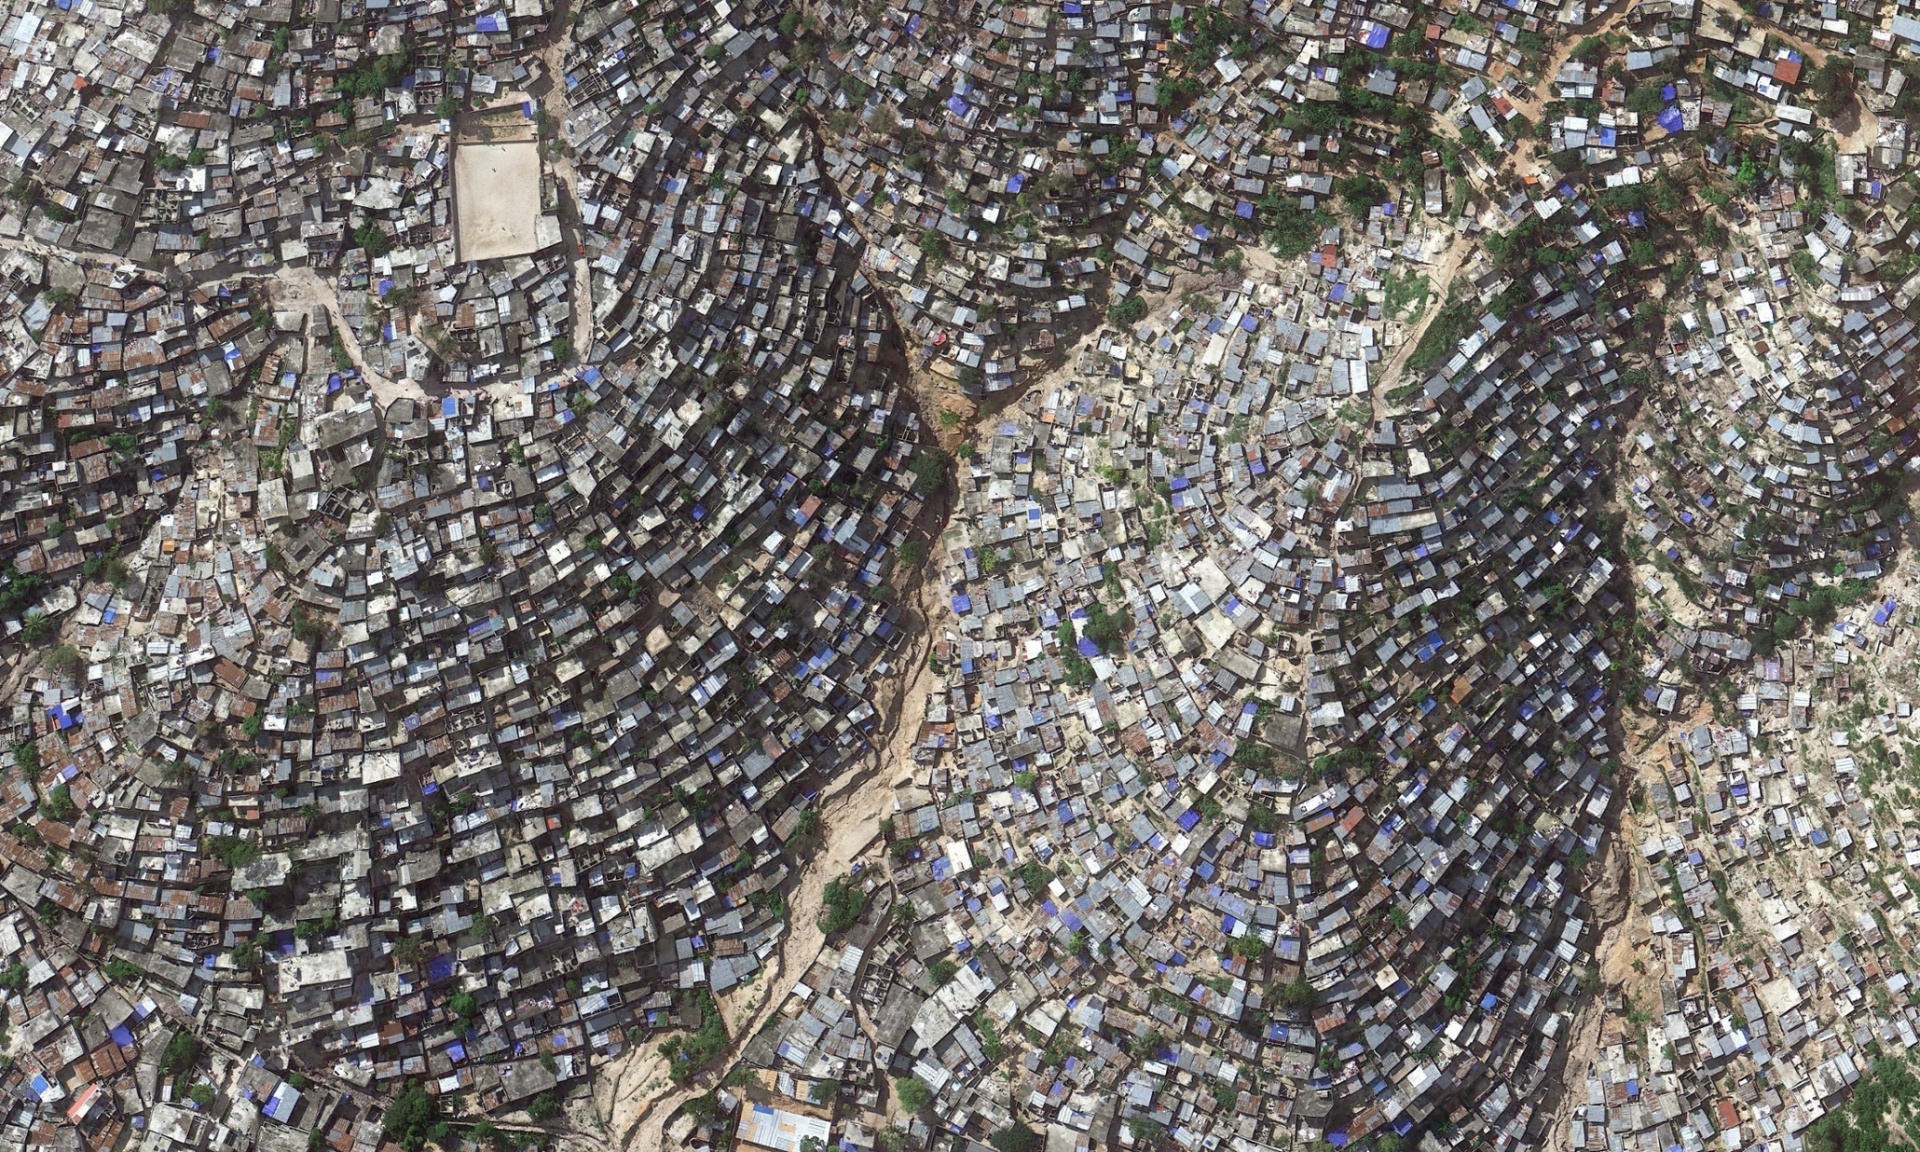 Hill side slum in Haiti